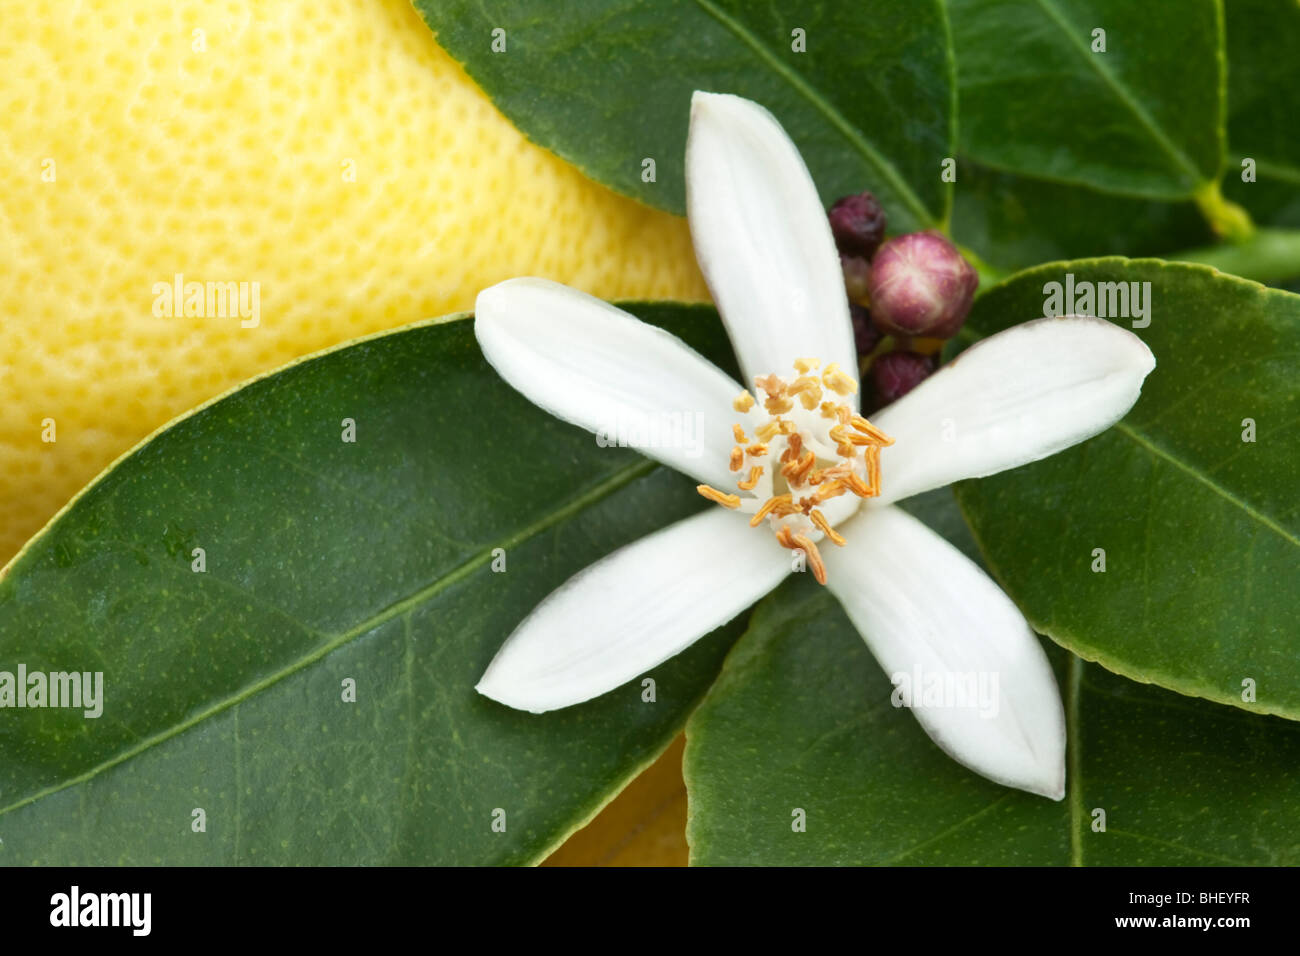 Lemon Blossom, branch. - Stock Image